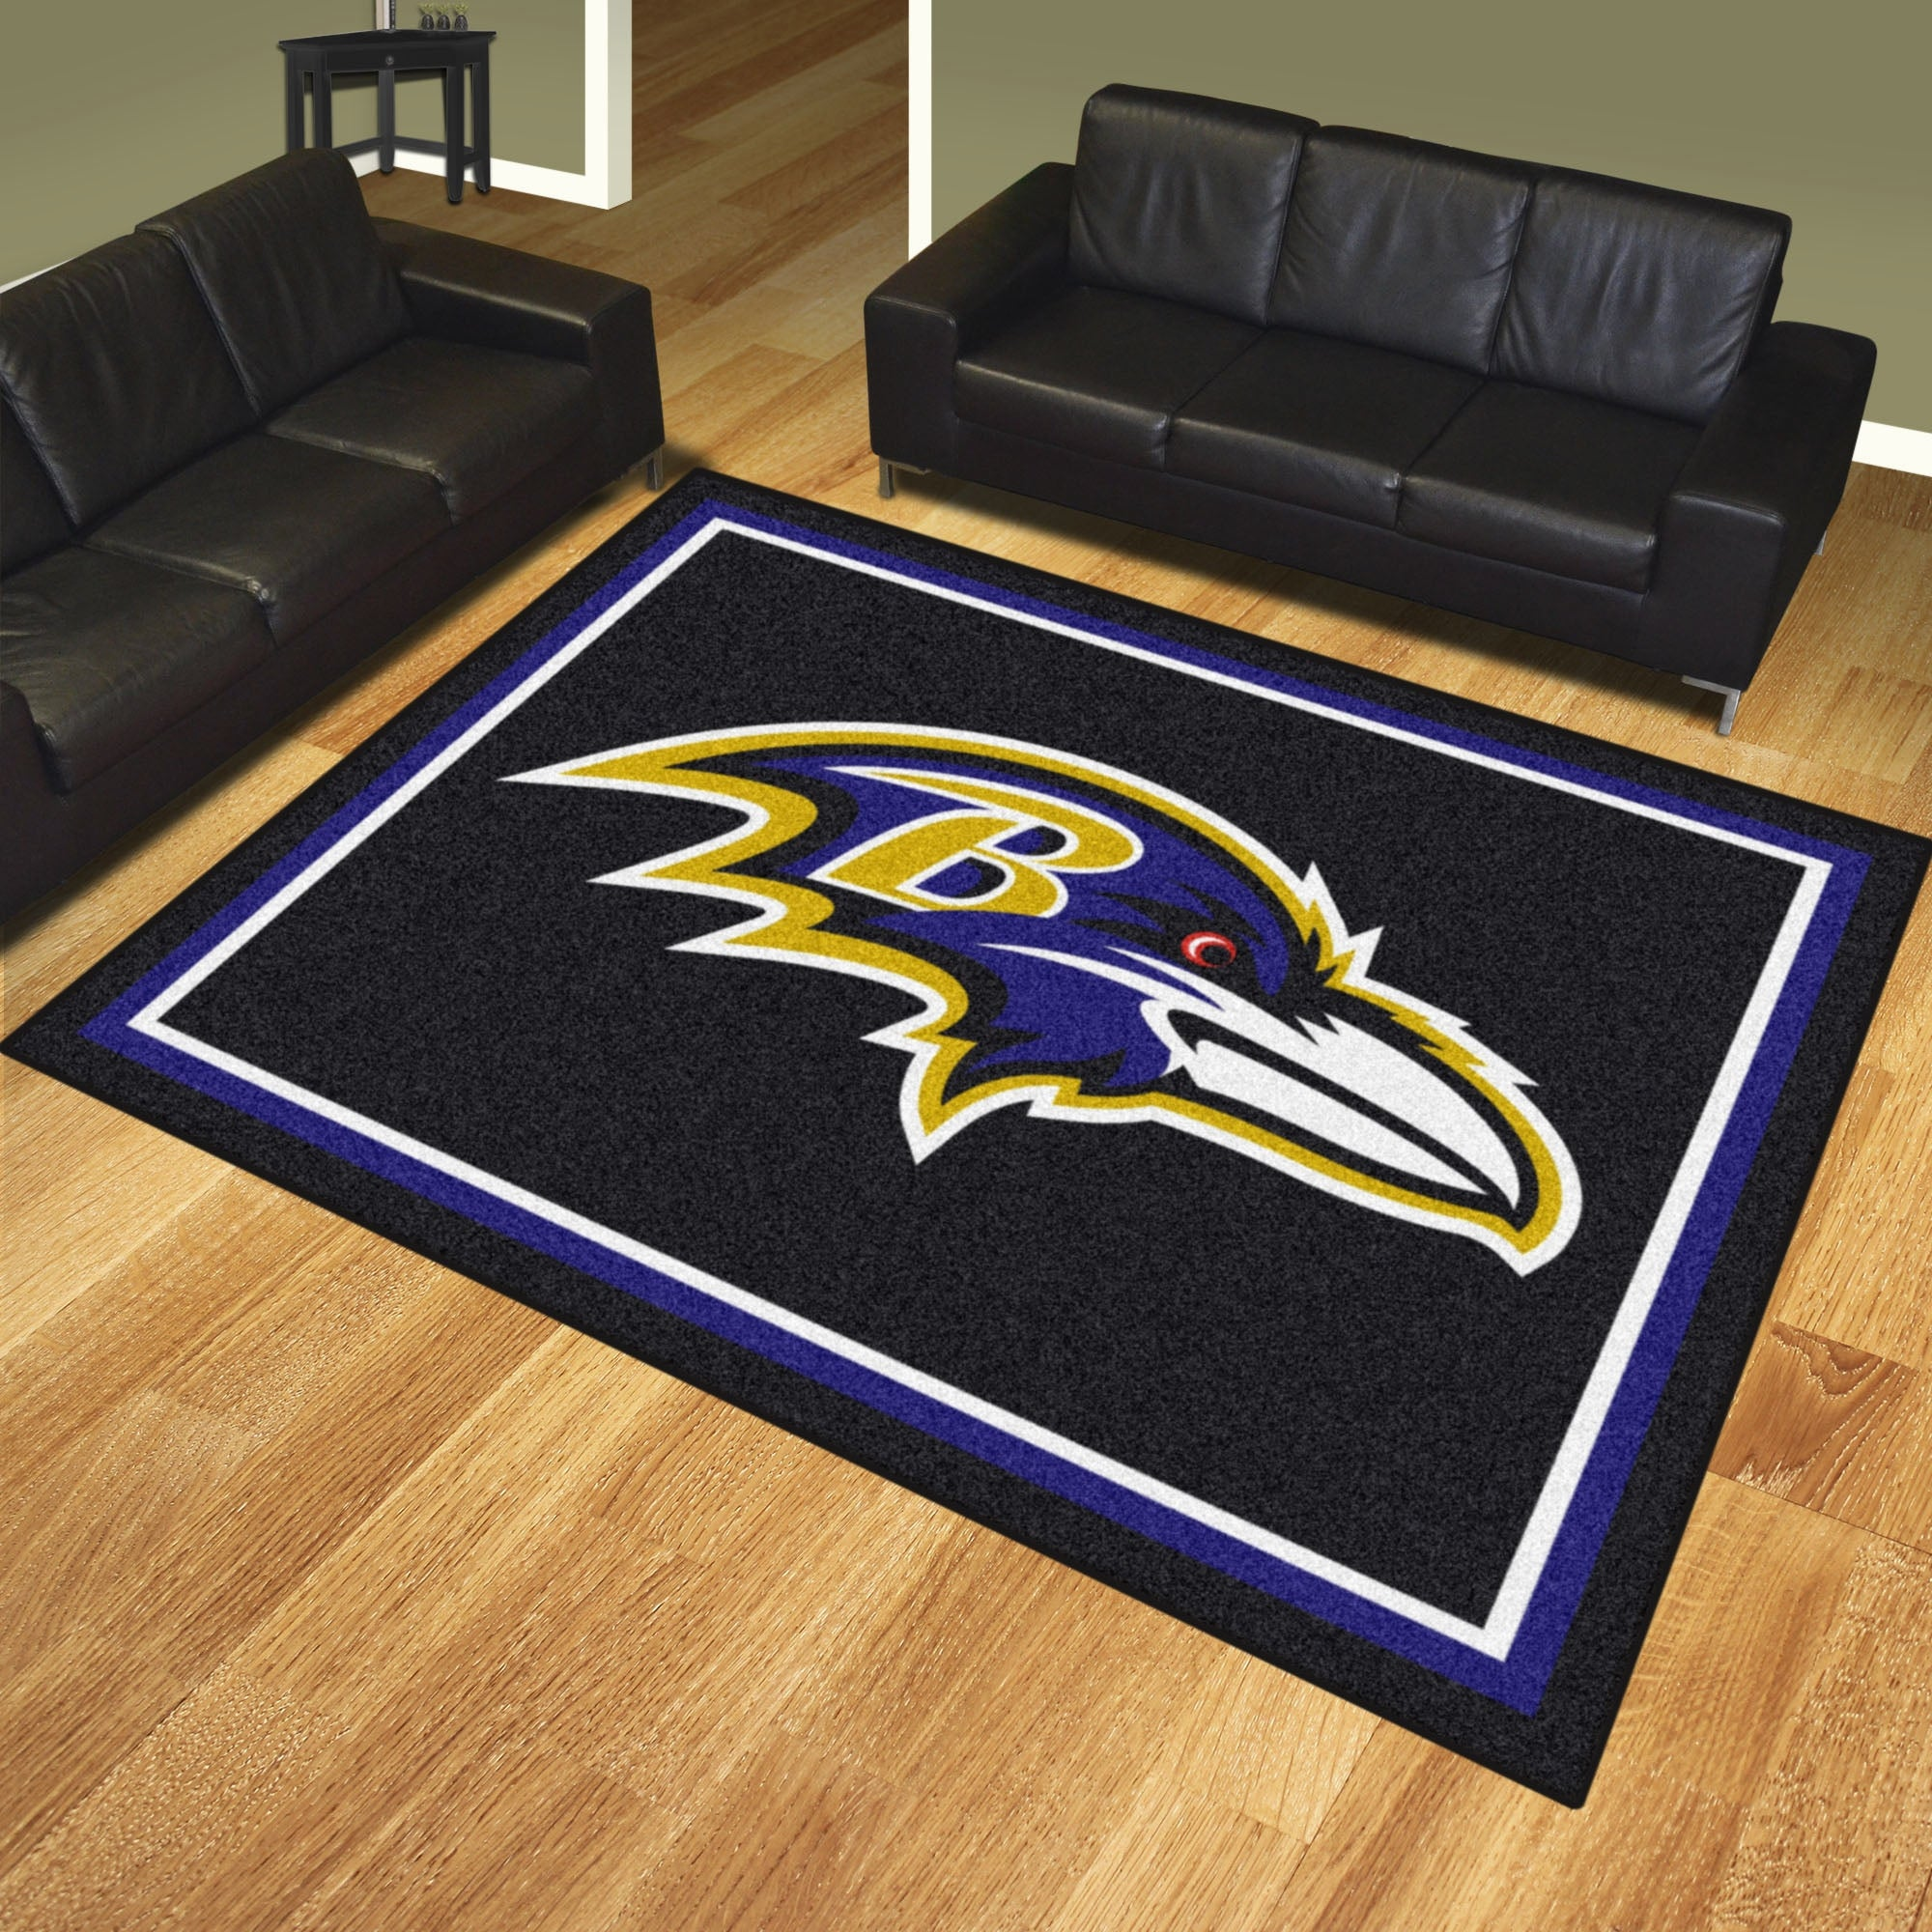 c4bf46c9 NFL Baltimore Ravens 8 x 10 Foot Plush Non-Skid Area Rug